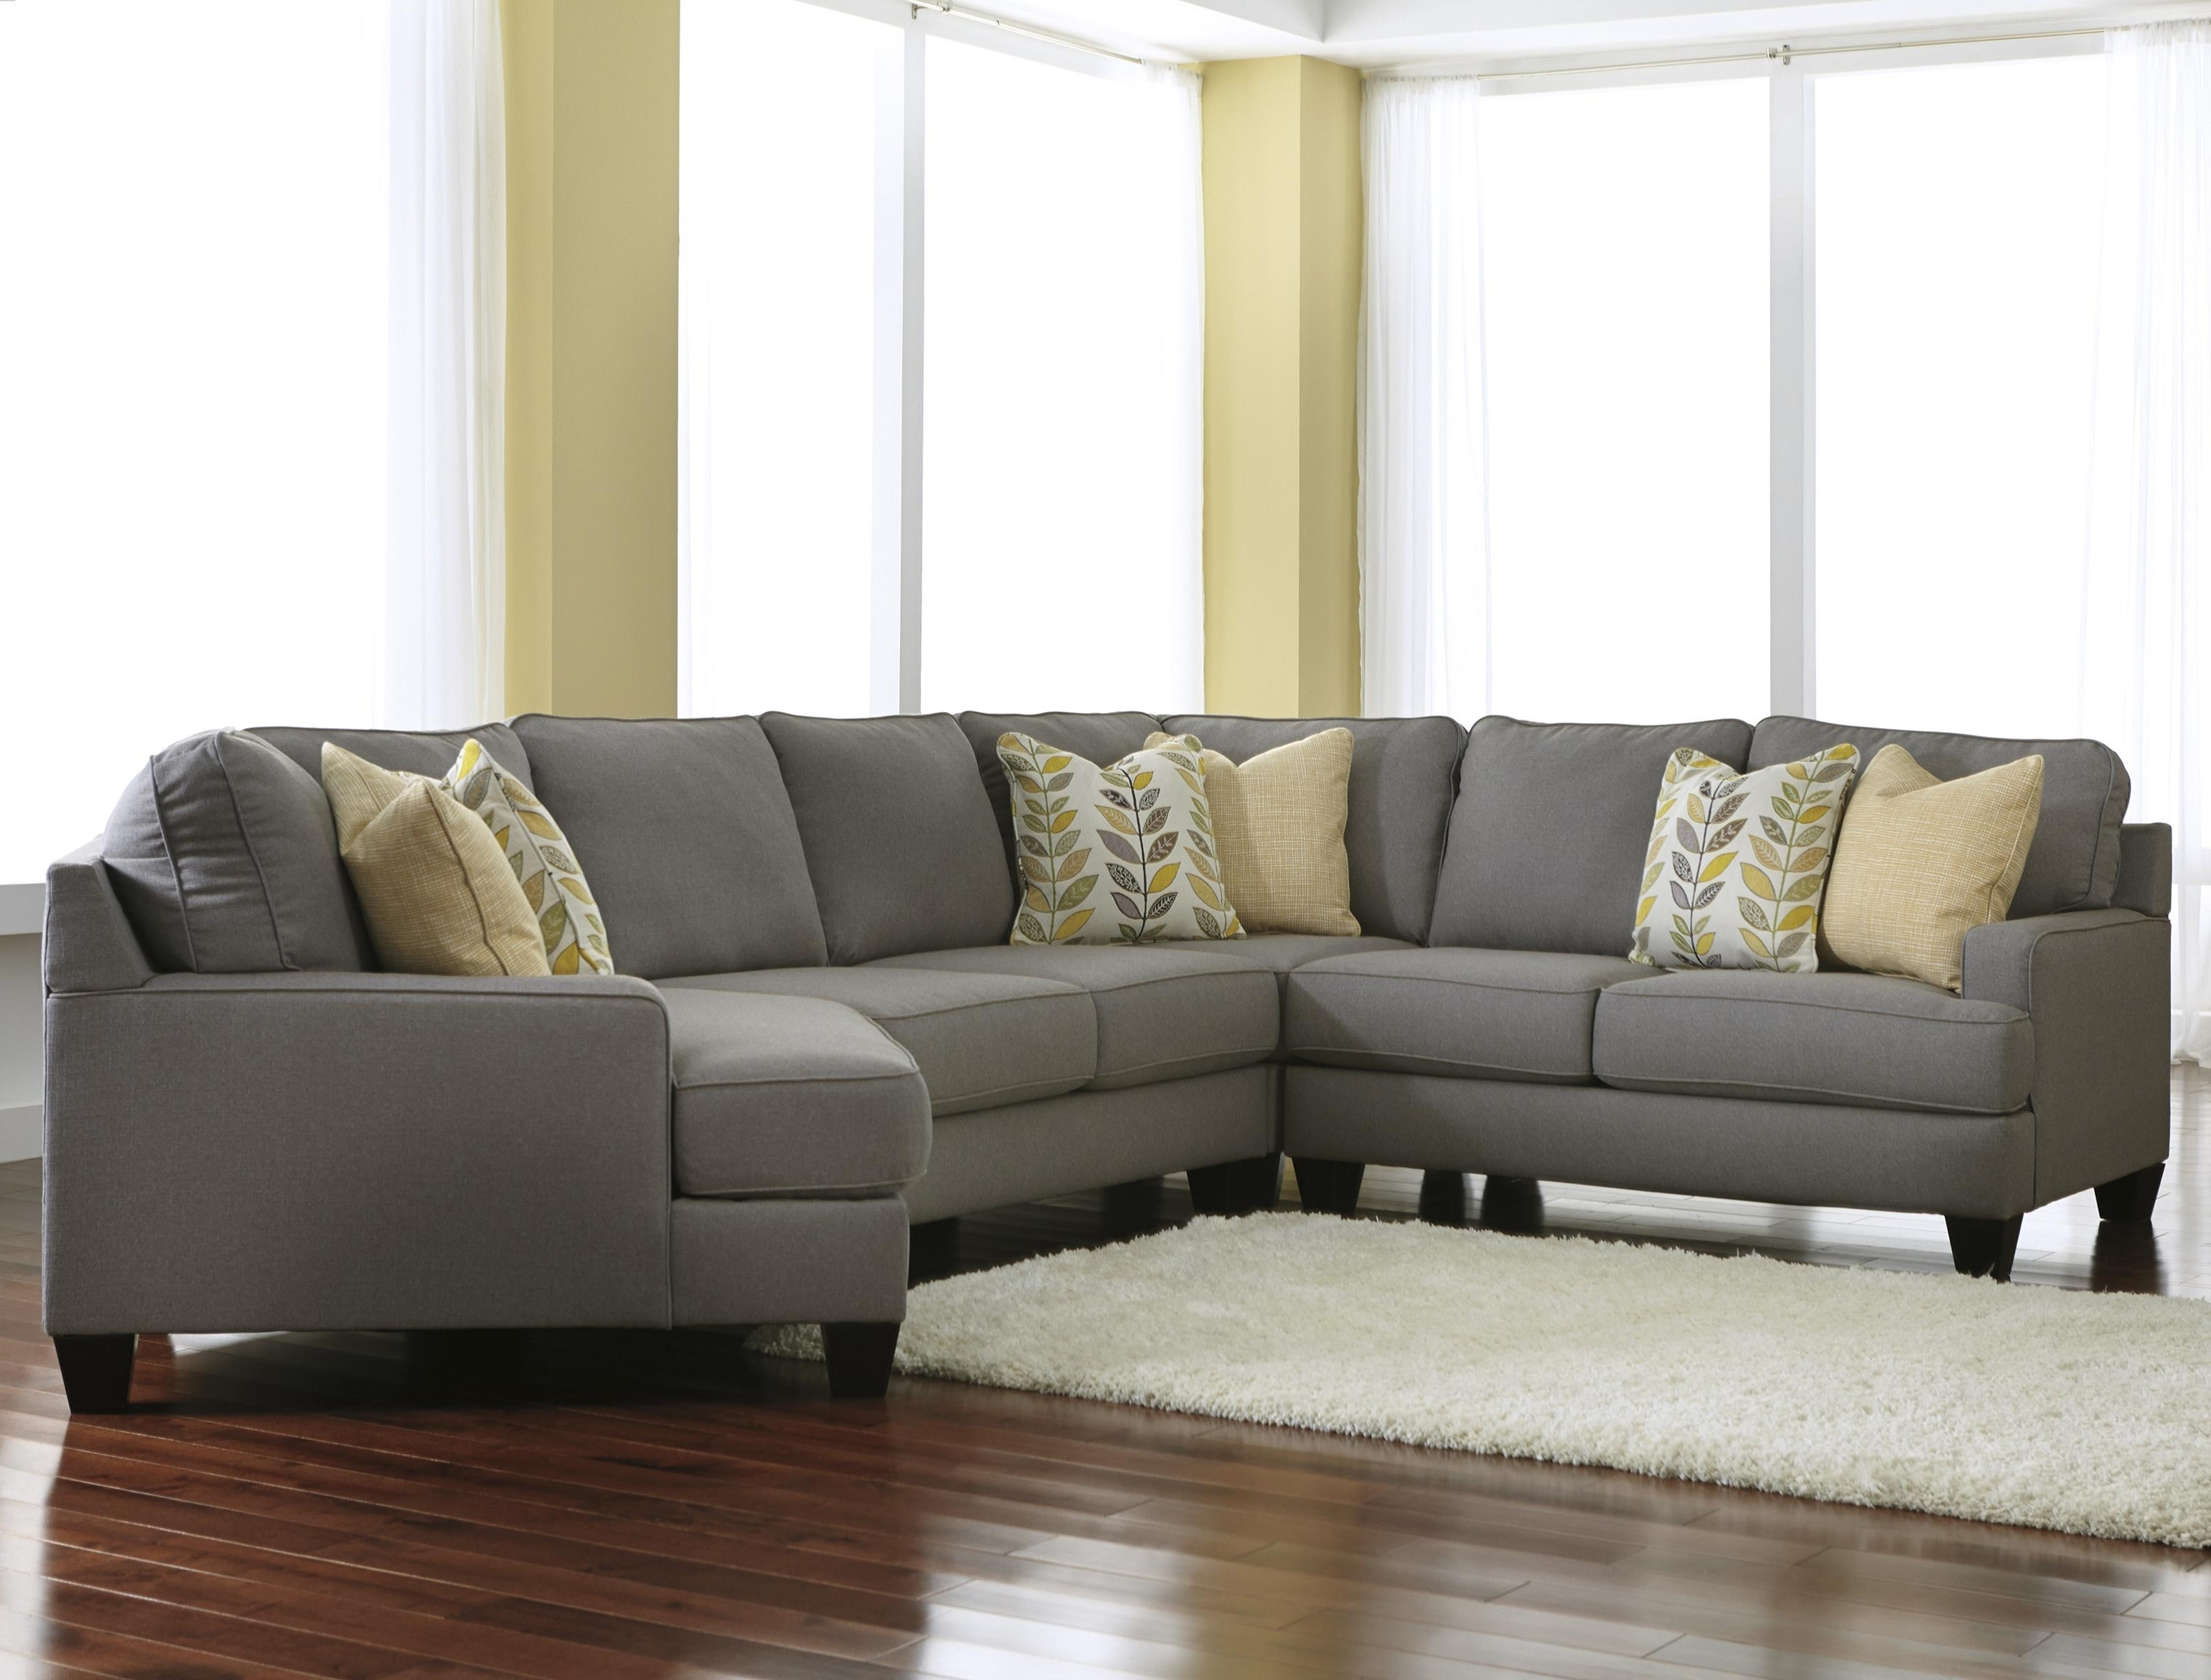 Most Current Modern 4 Piece Sectional Sofa With Right Cuddler & Reversible Seat Regarding Cuddler Sectional Sofas (View 13 of 20)